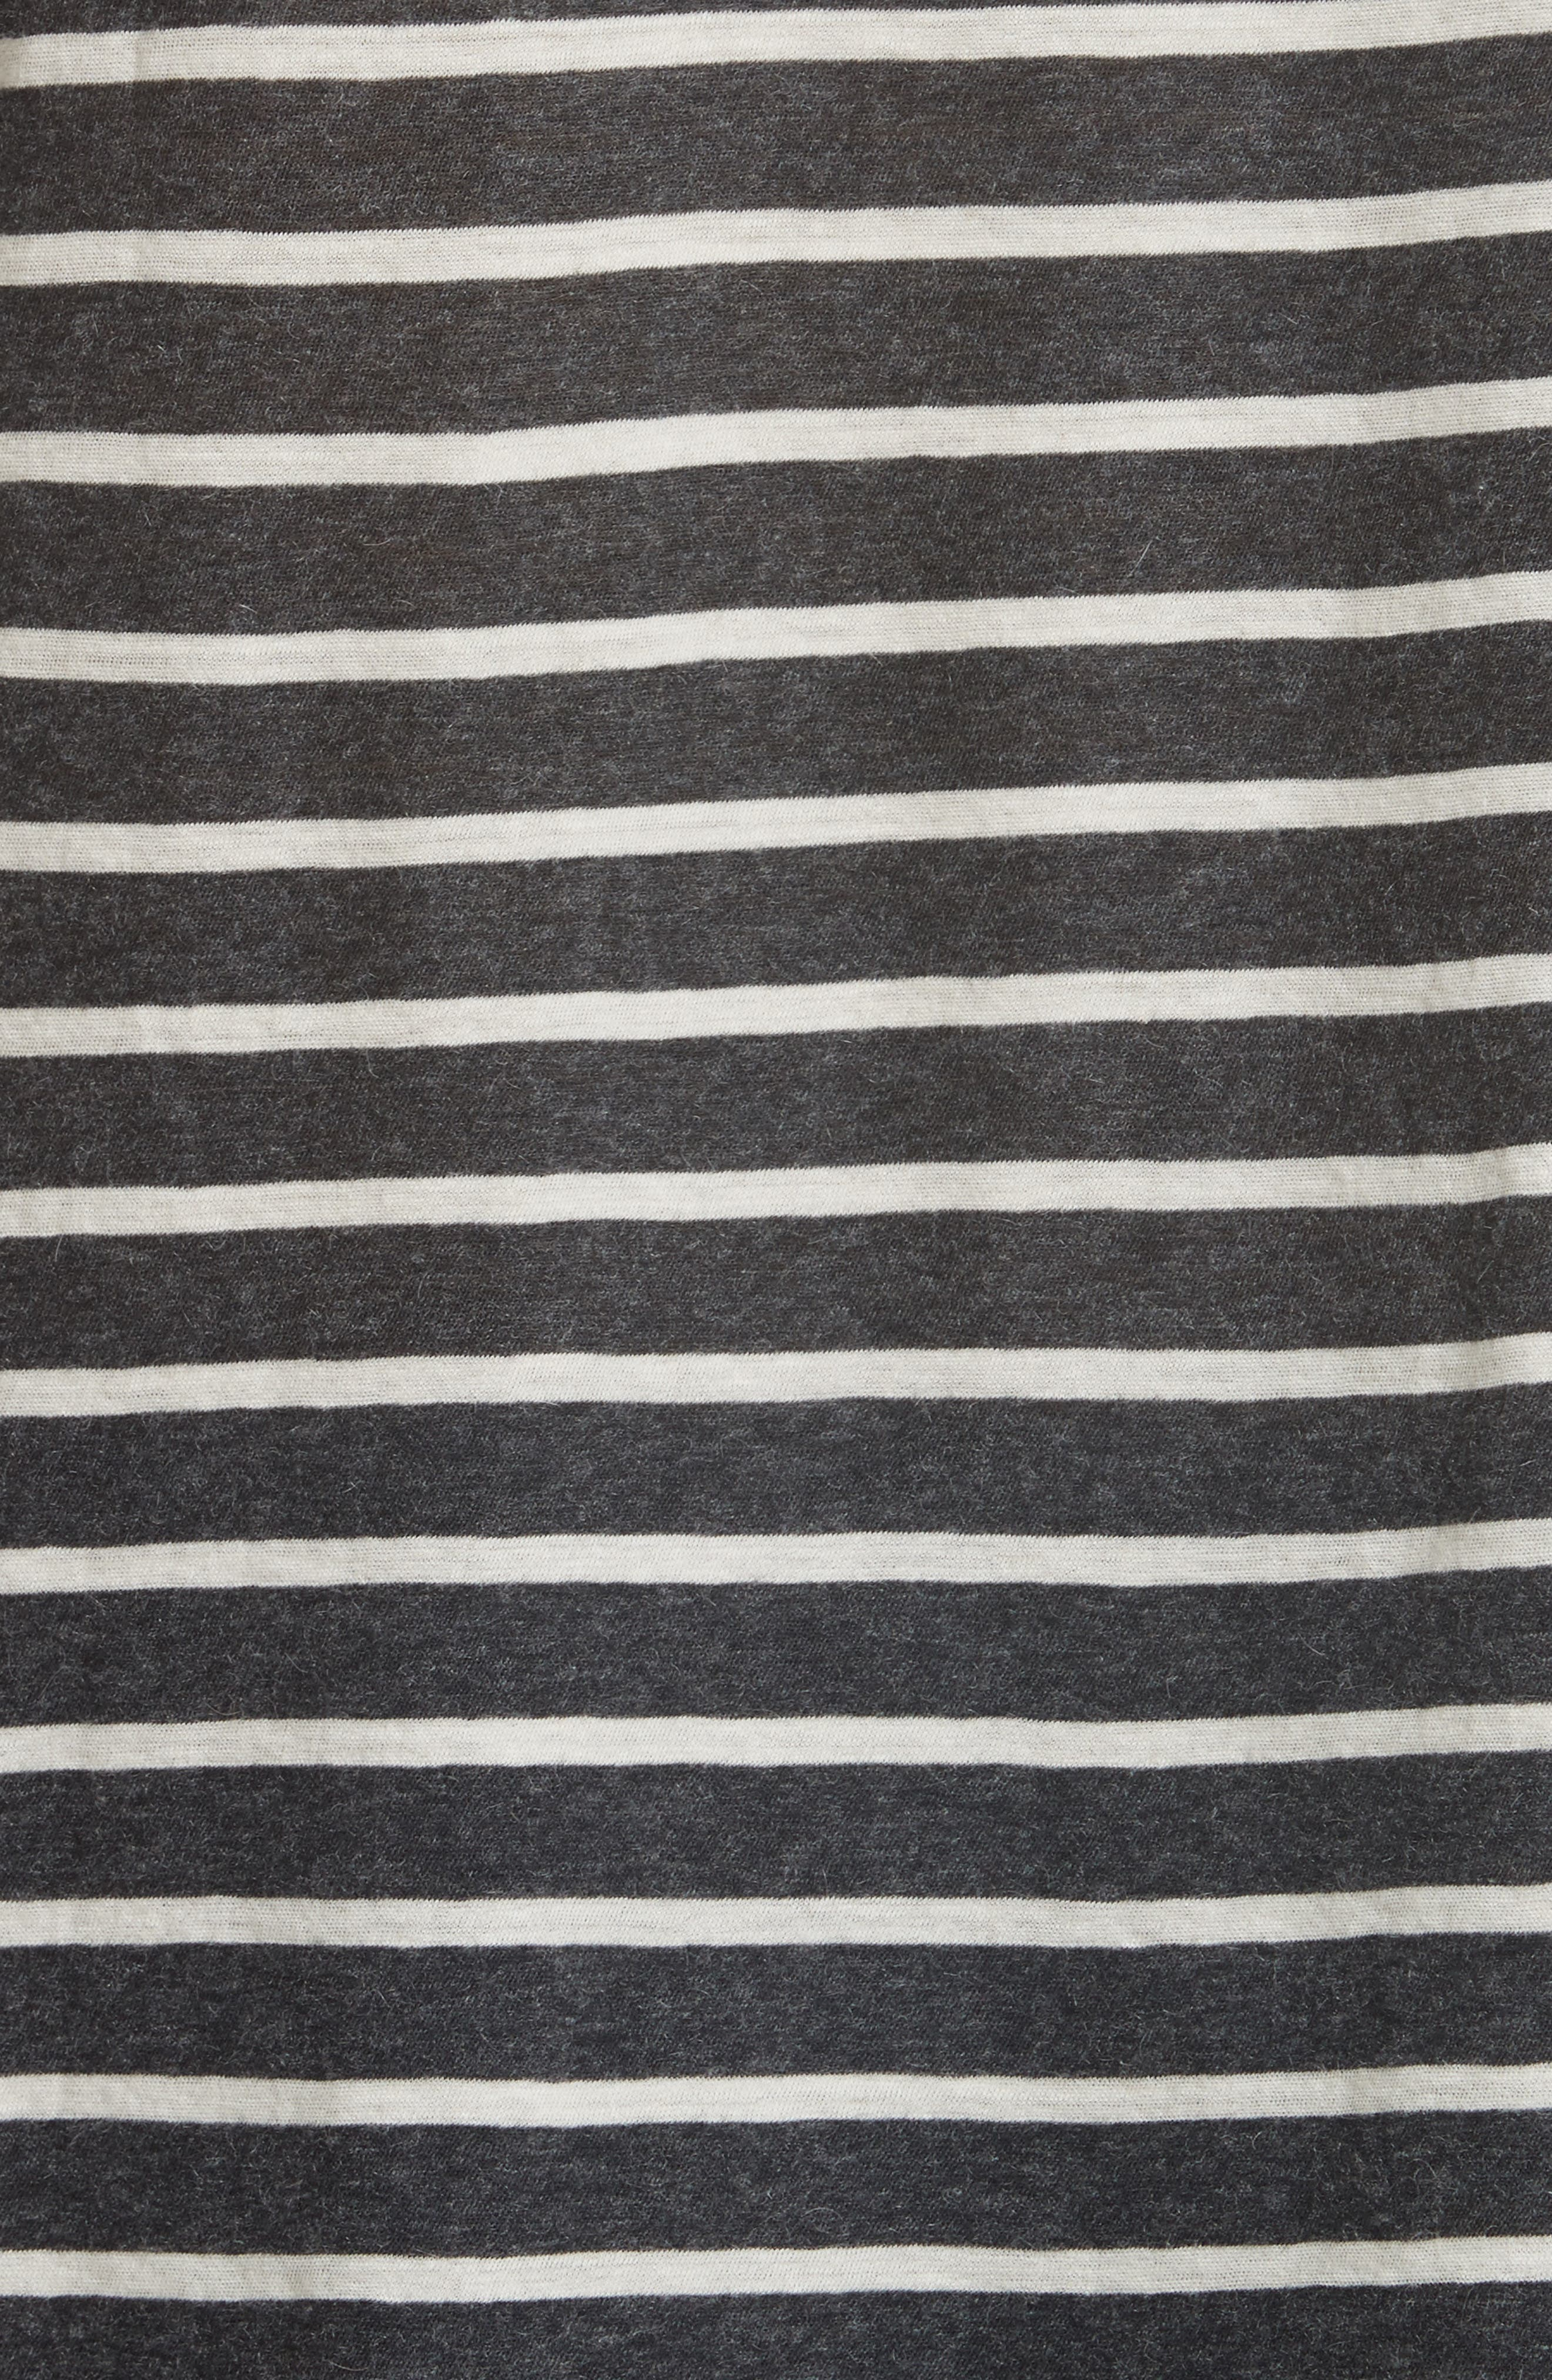 Stripe Cotton & Cashmere Boatneck Top,                             Alternate thumbnail 5, color,                             Anthracite/ Milk